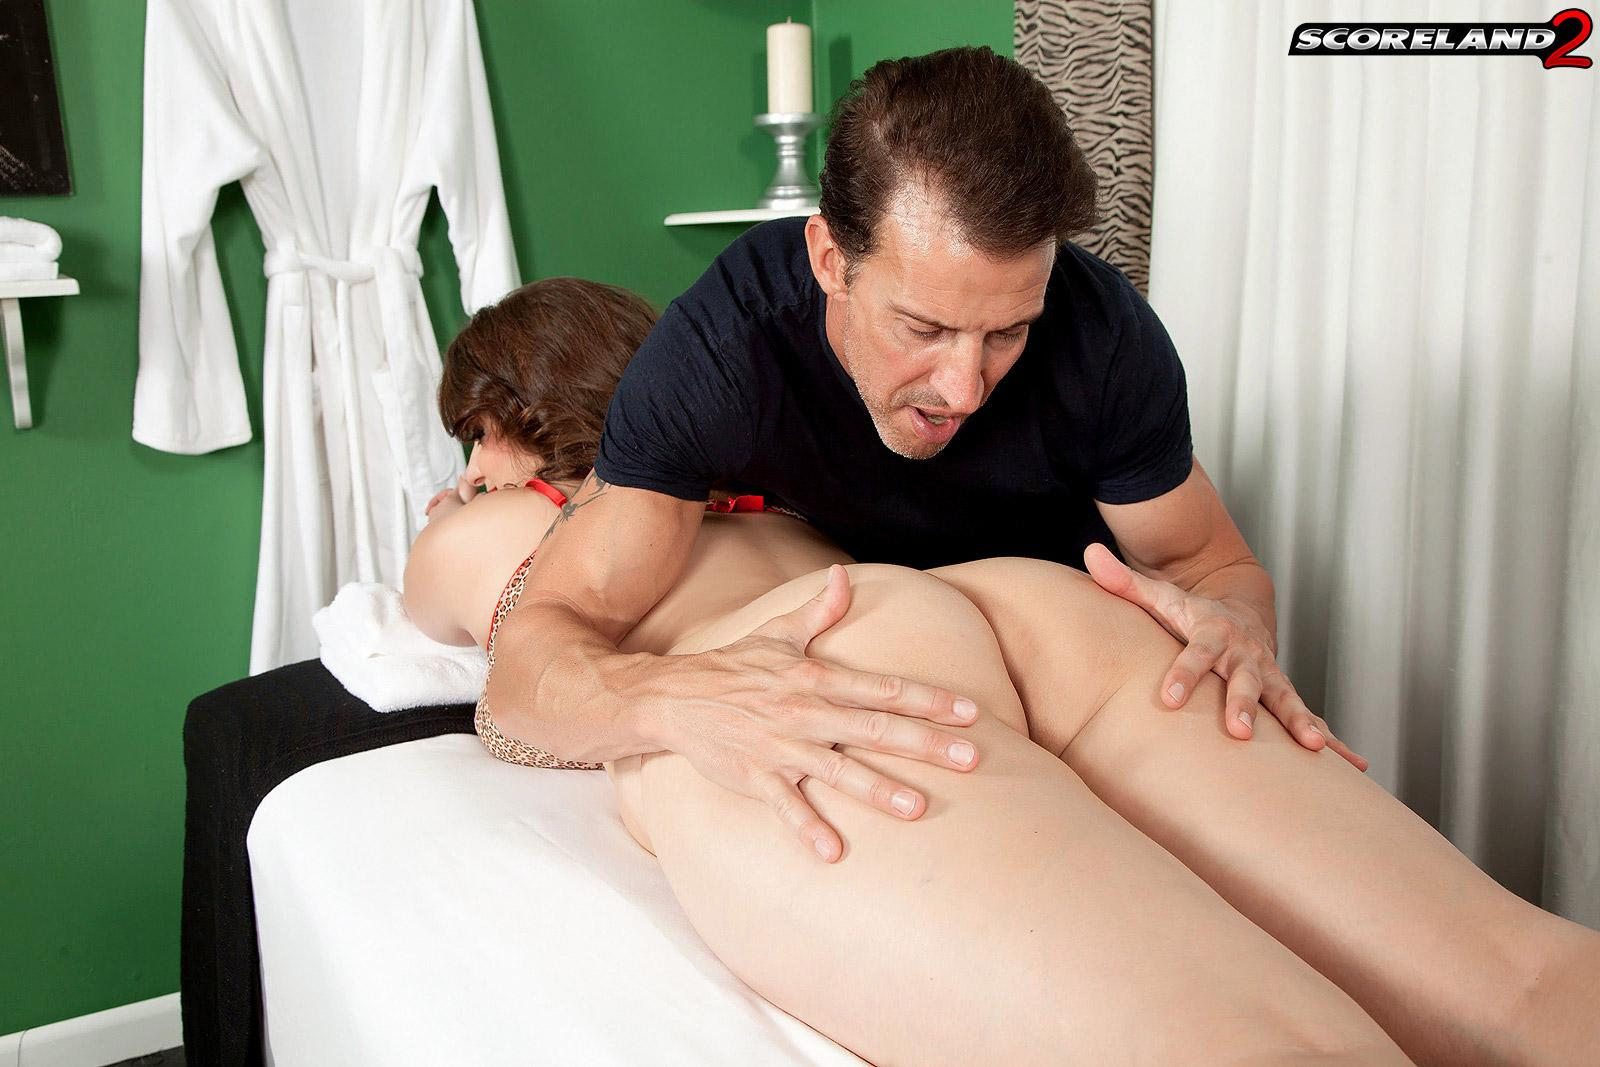 Chubby girl Jessica Roberts is unclothed and seduced by her masseuse